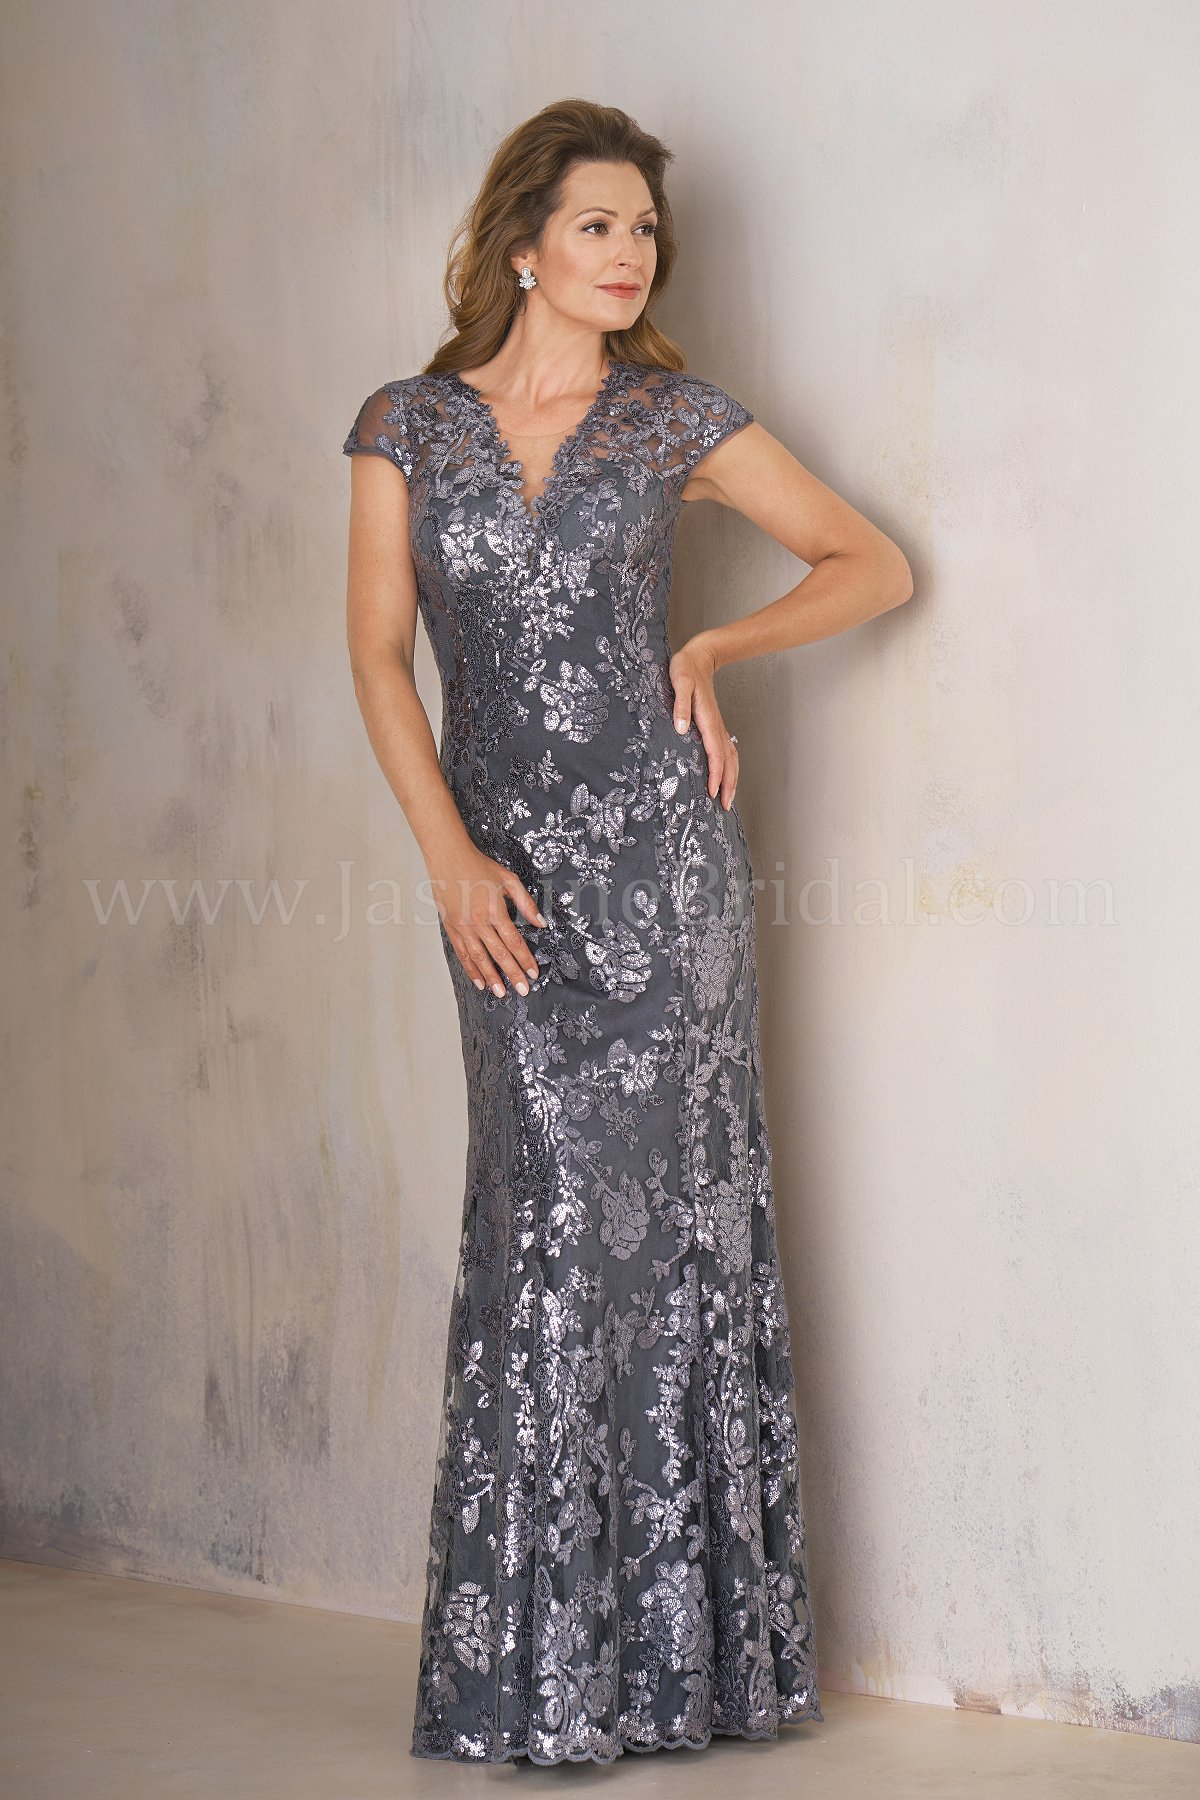 78d6b2ae7cd K208008 Long V-neck Sequin Lace MOB Dress with Cap Sleeves